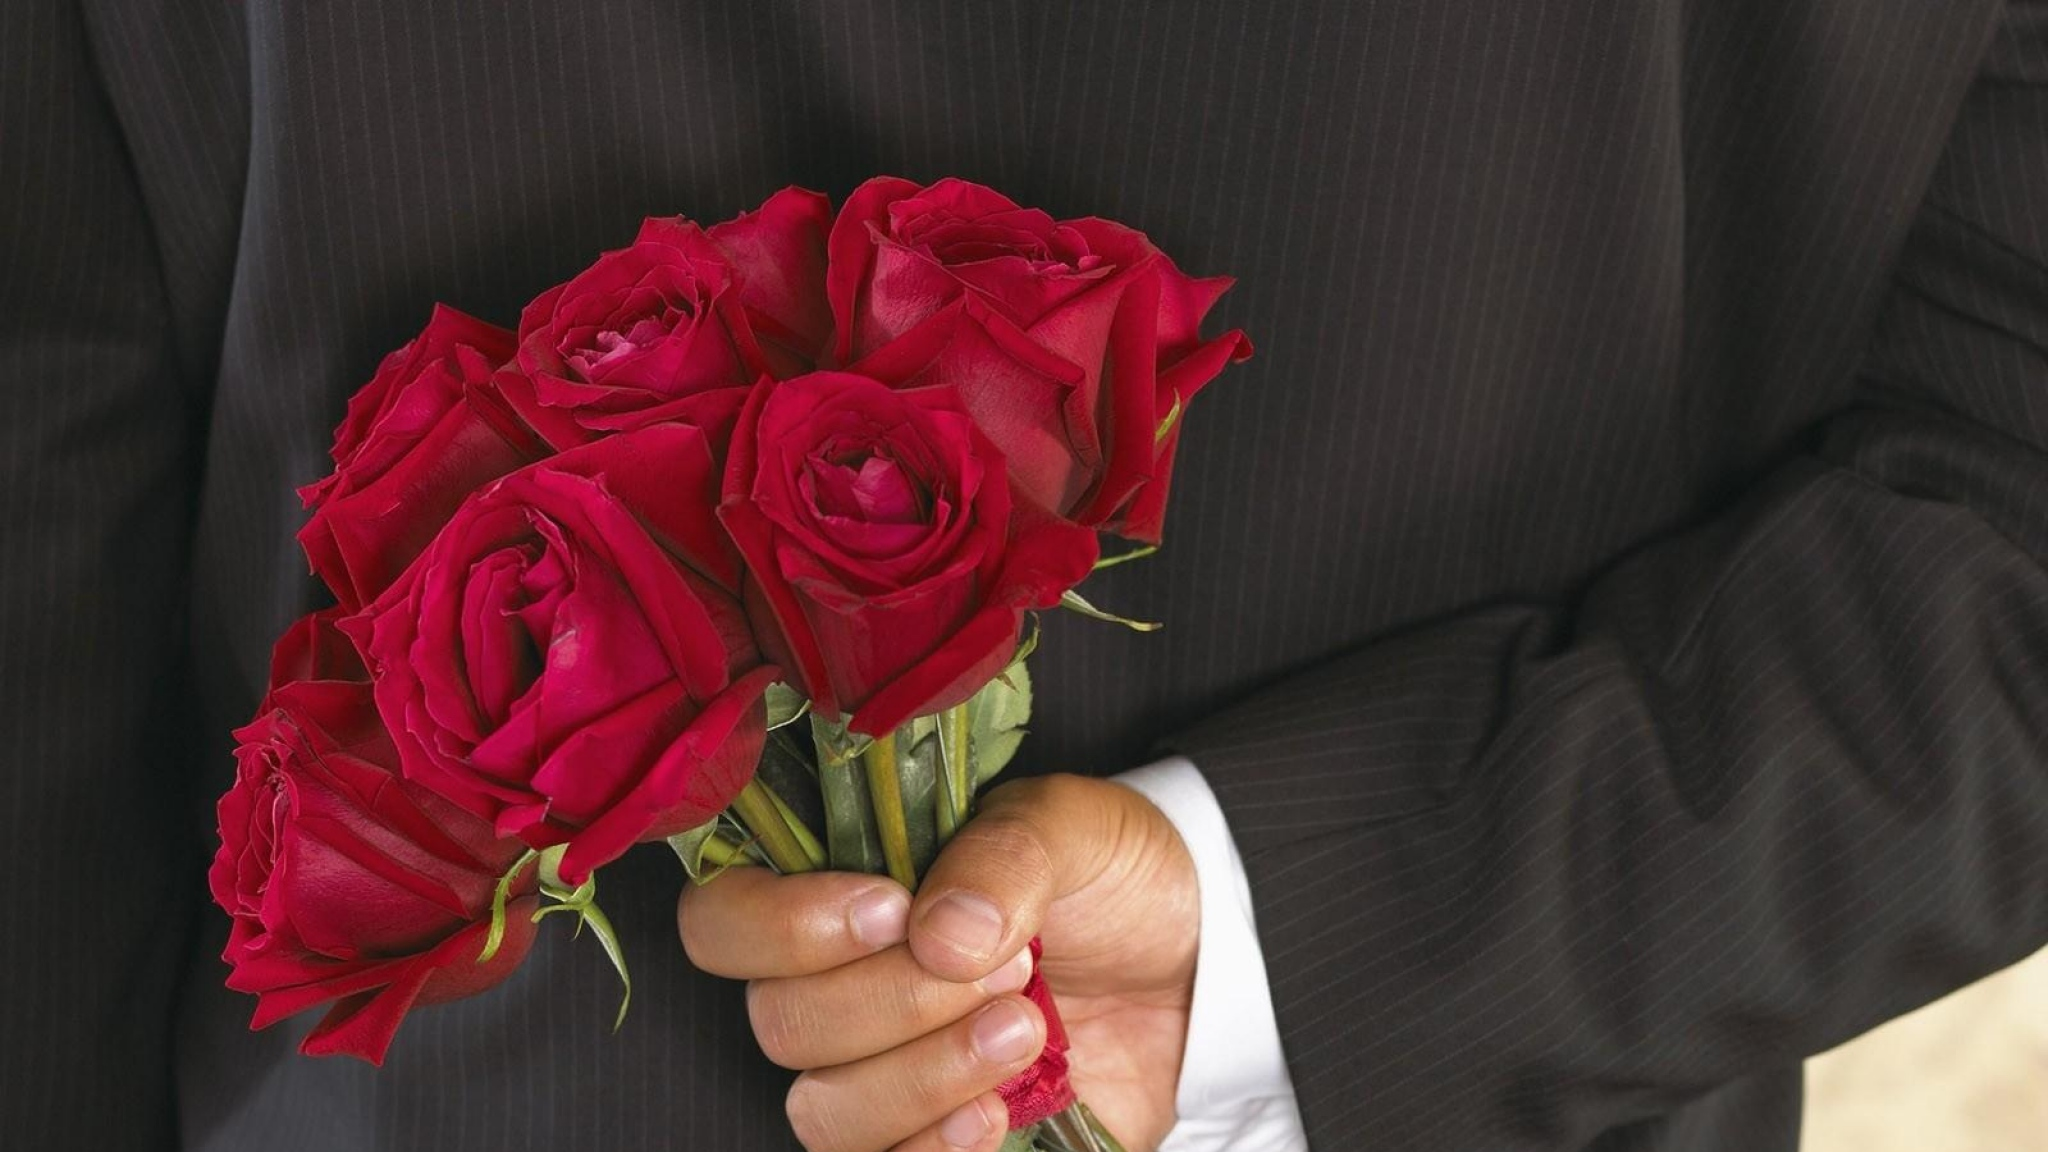 roses_flowers_bouquet_man_hand_surprise_41032_2048x1152-2